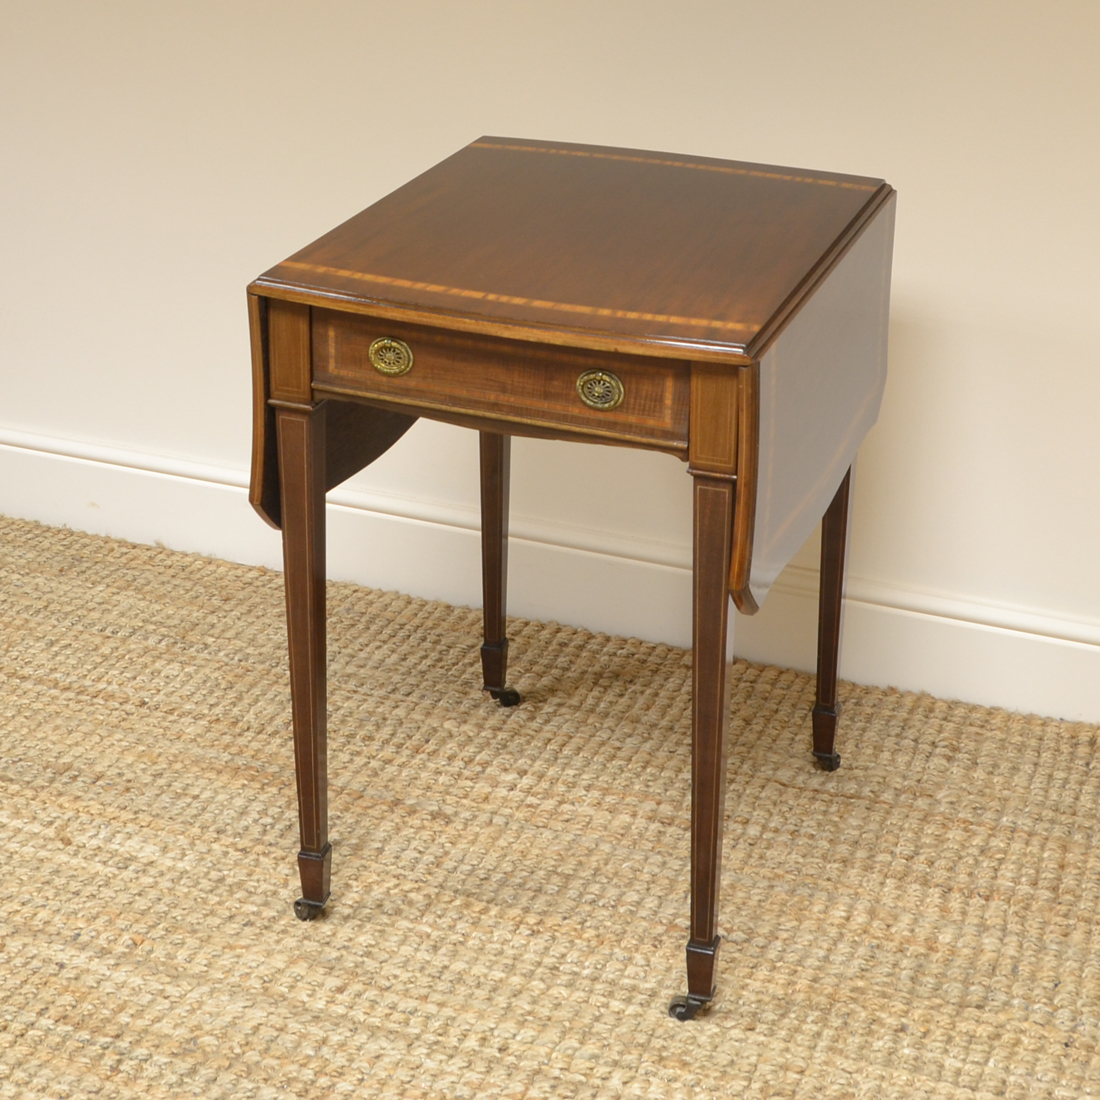 Stunning Quality Edwardian Mahogany Antique Drop Leaf Side Table 06310 La155315 Loveantiques Com